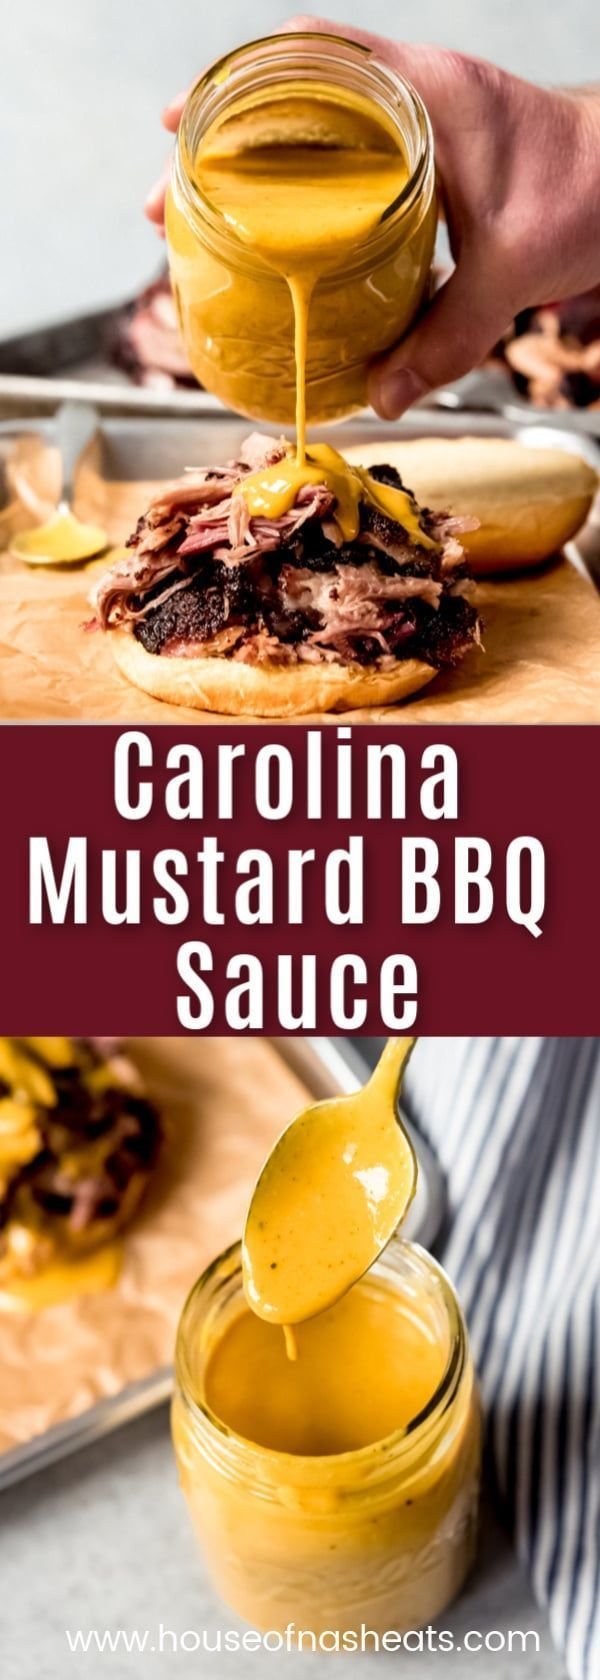 Carolina Mustard BBQ Sauce (aka South Carolina Gold BBQ Sauce) is an easy recipe for the tangy, slightly sweet sauce that is especially popular in South Carolina barbecue.  It is perfect drizzled over smoked pork, chicken, burgers, ribs - you name it! #bbq #sauce #barbecue #mustard #vinegar #easy #homemade #SouthCarolina #Carolina #bbqsauce #recipe #grilling #meat #gold #Easy Recipes casserole Carolina Mustard BBQ Sauce